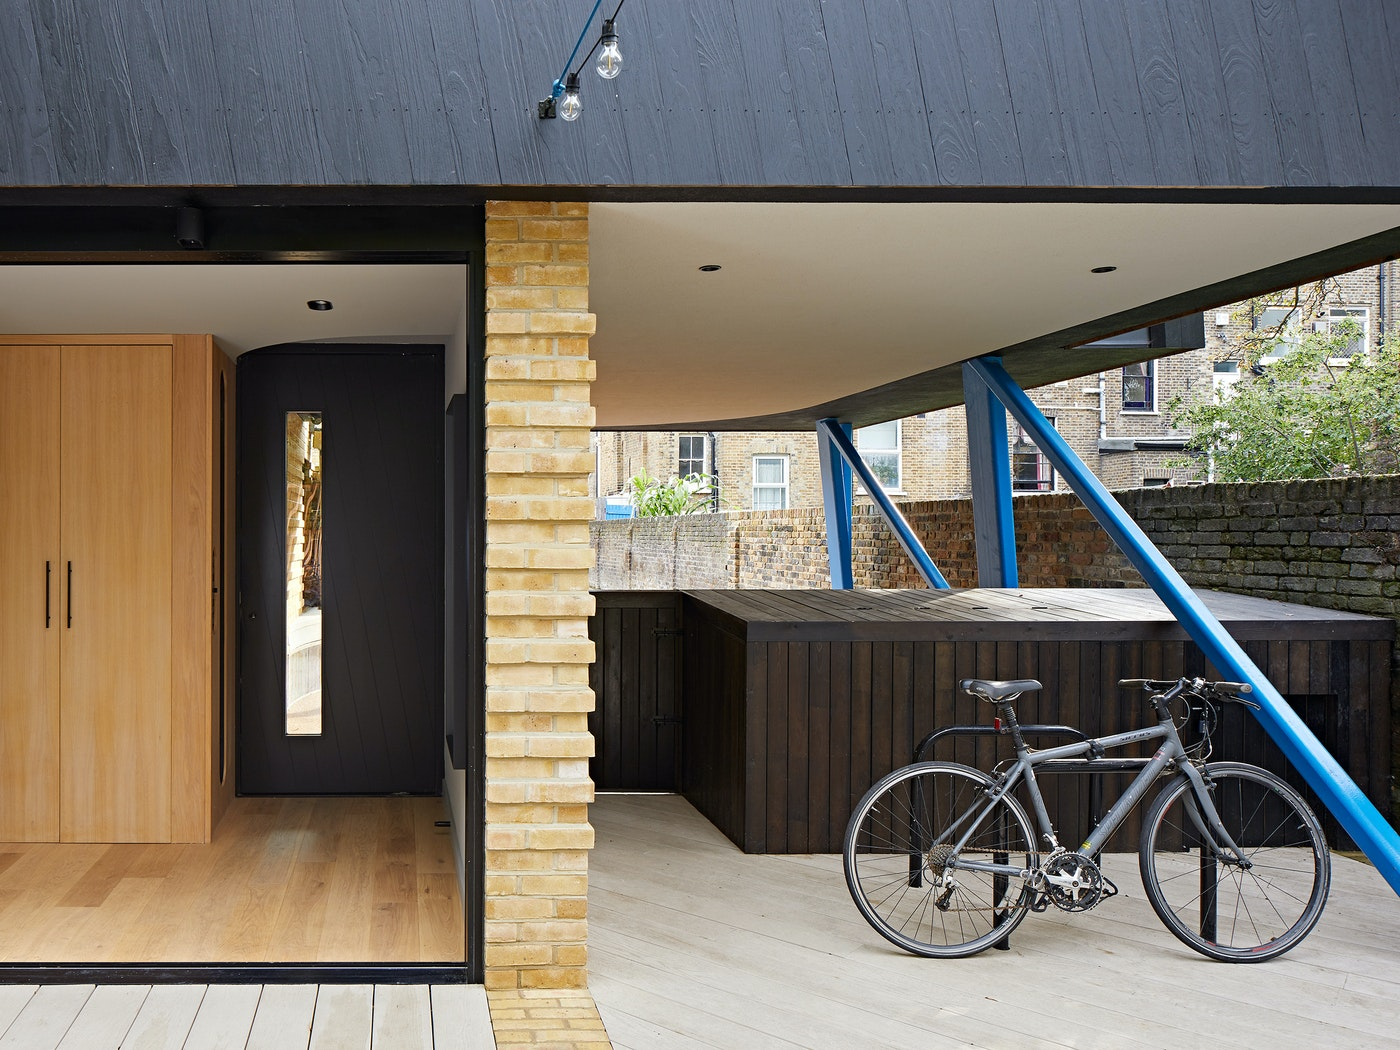 Housed within a variety of other building materials & colours, the black door & cladding offer the perfect neutral base